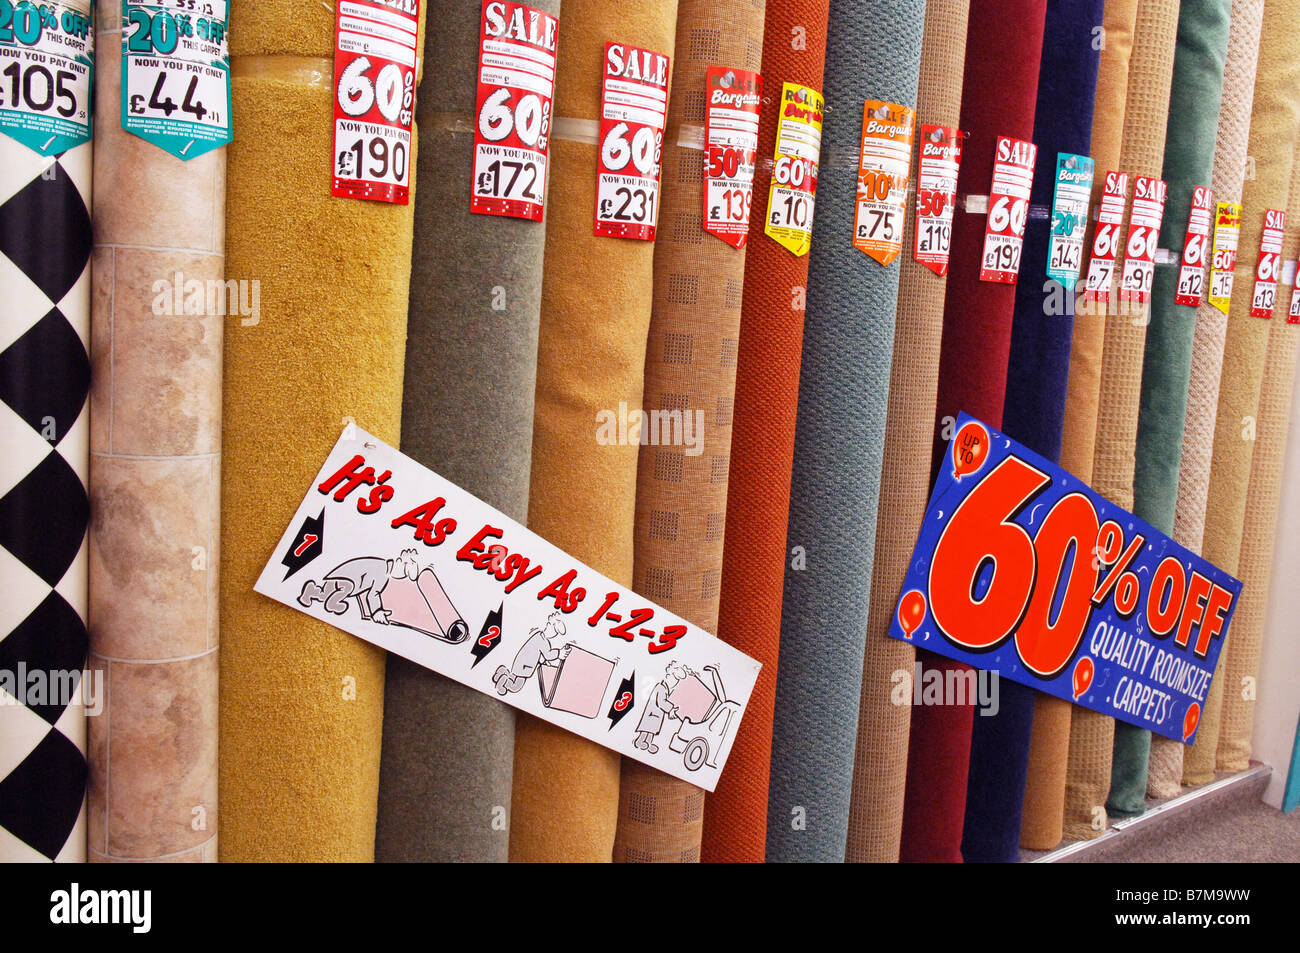 rolls of different discount carpets for sale in carpet right some with up to 60 off with the sign its as easy as 1 2 3 - Carpets For Sale